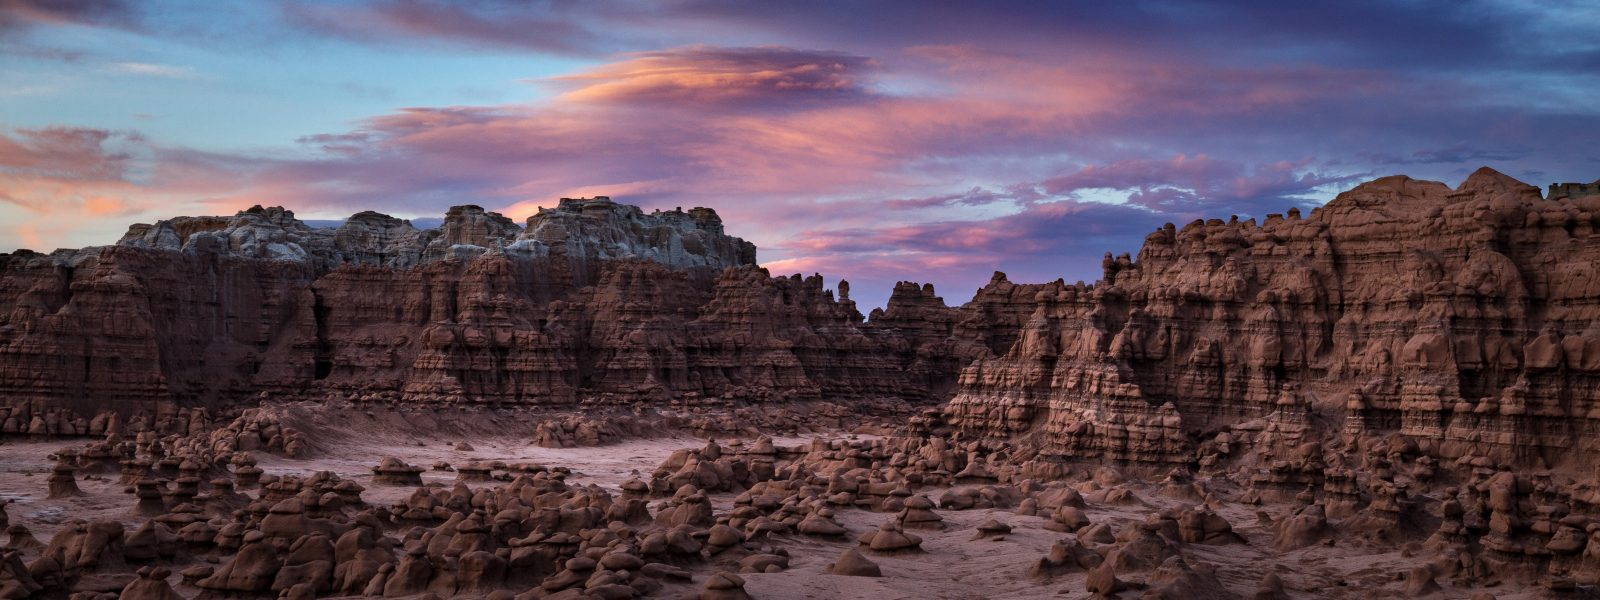 Goblin Valley at Sunset